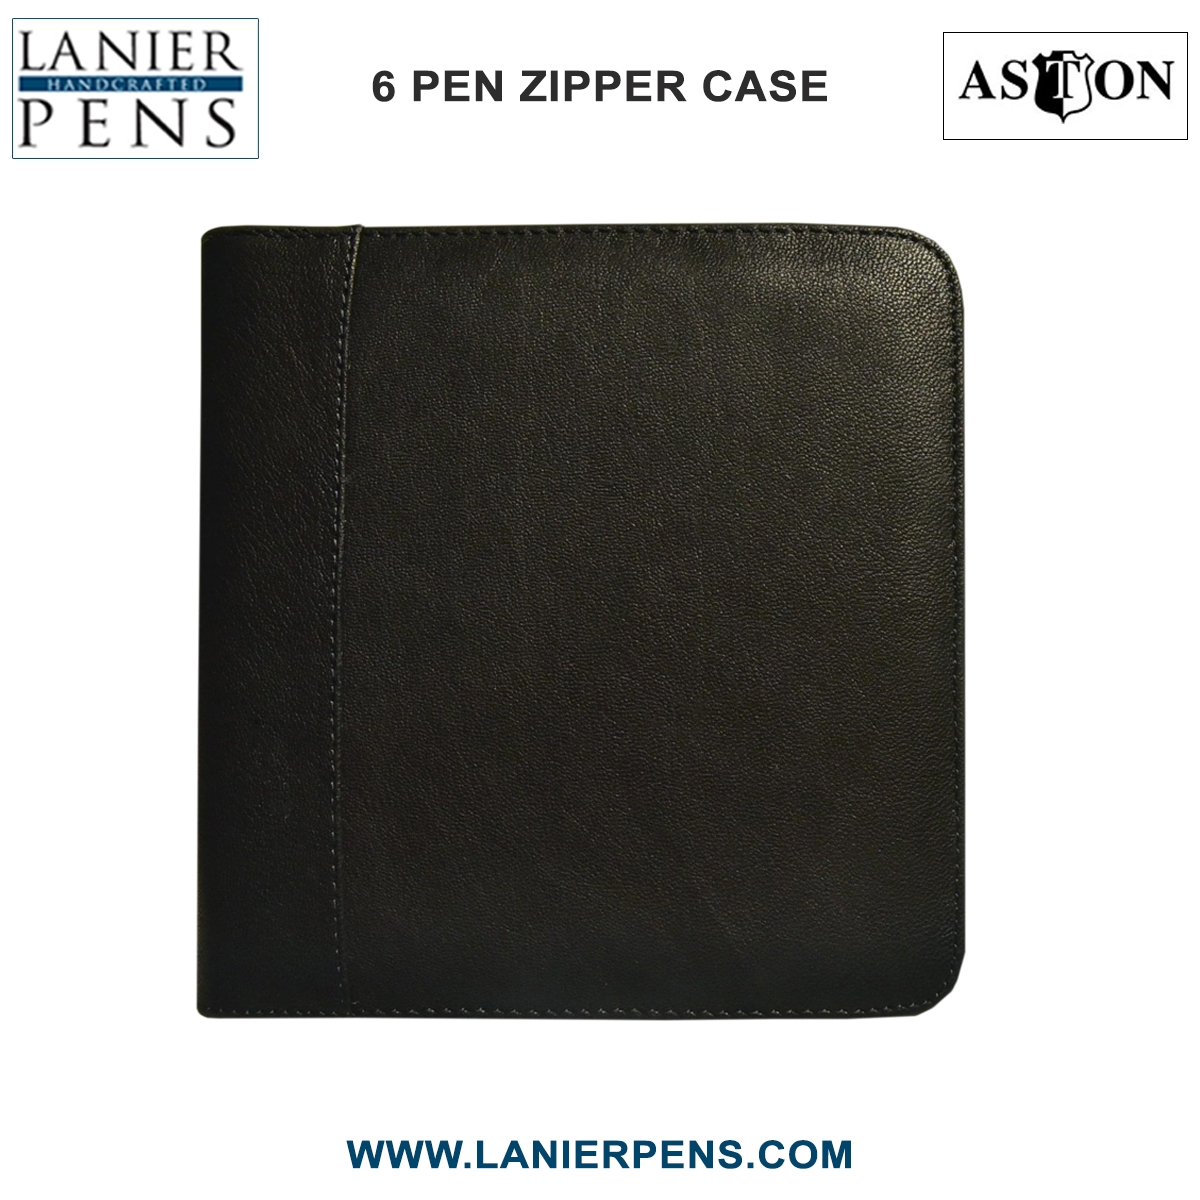 Aston Leather Collectors Zippered 6 Pen Case (Black)